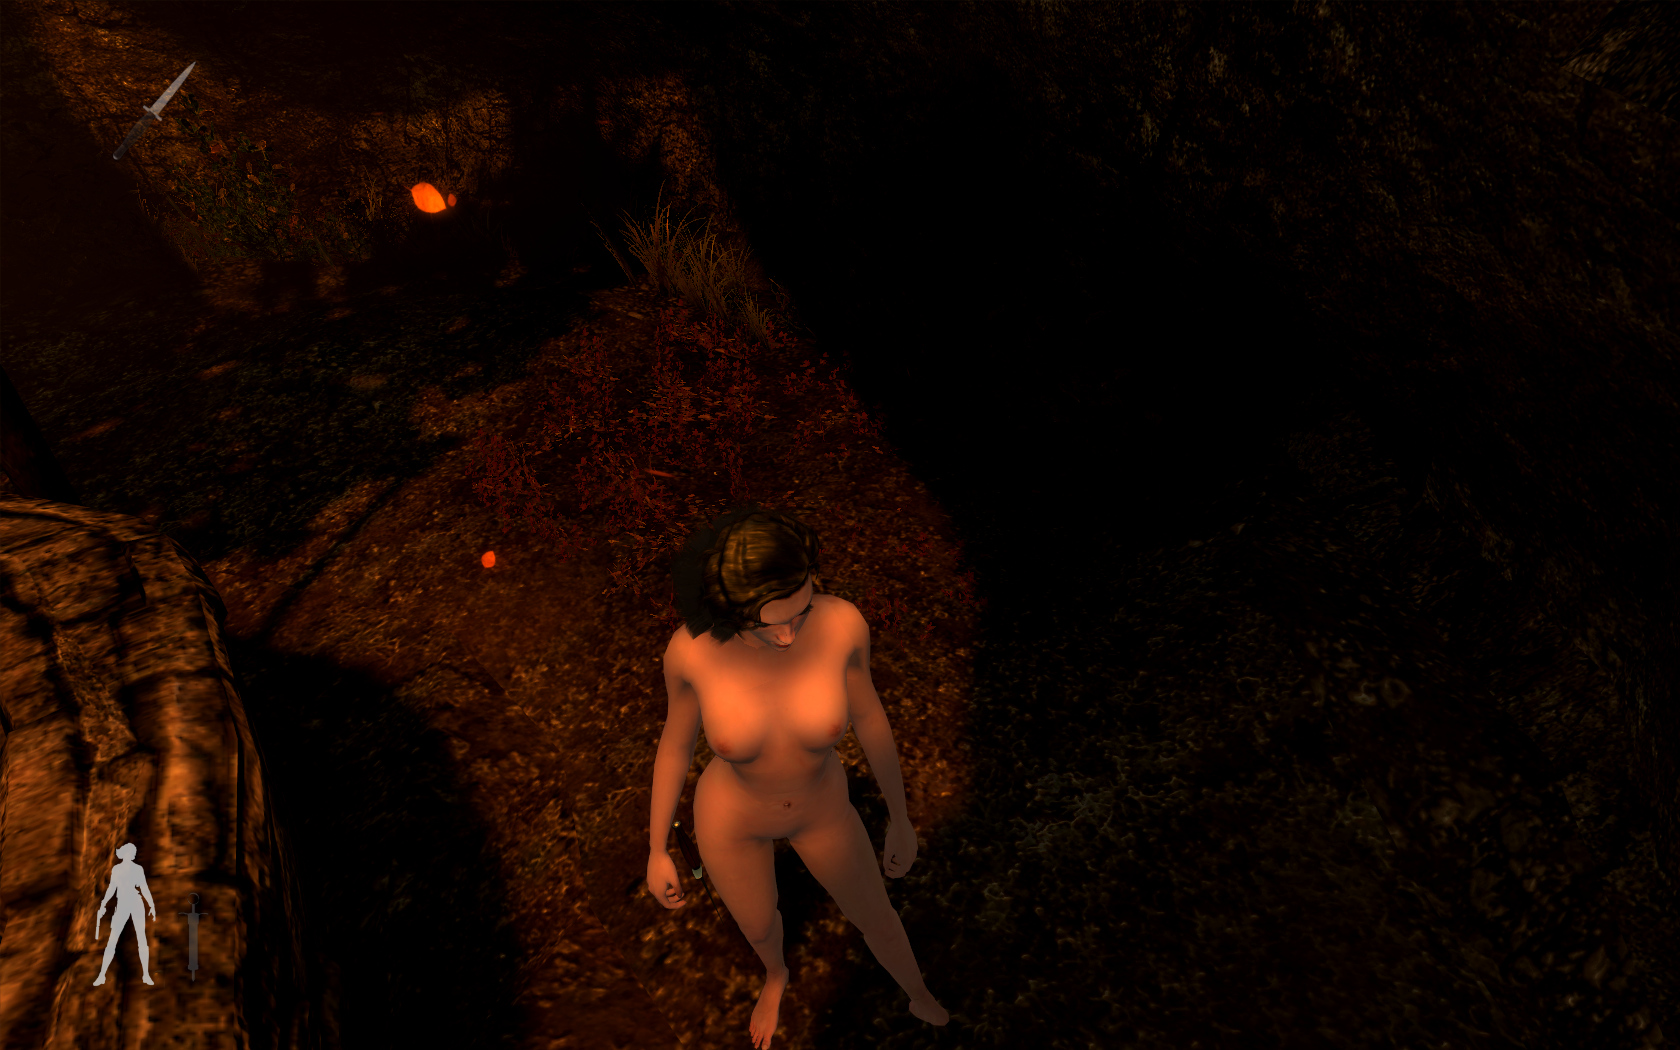 Assassins creed ii nude mod erotic image